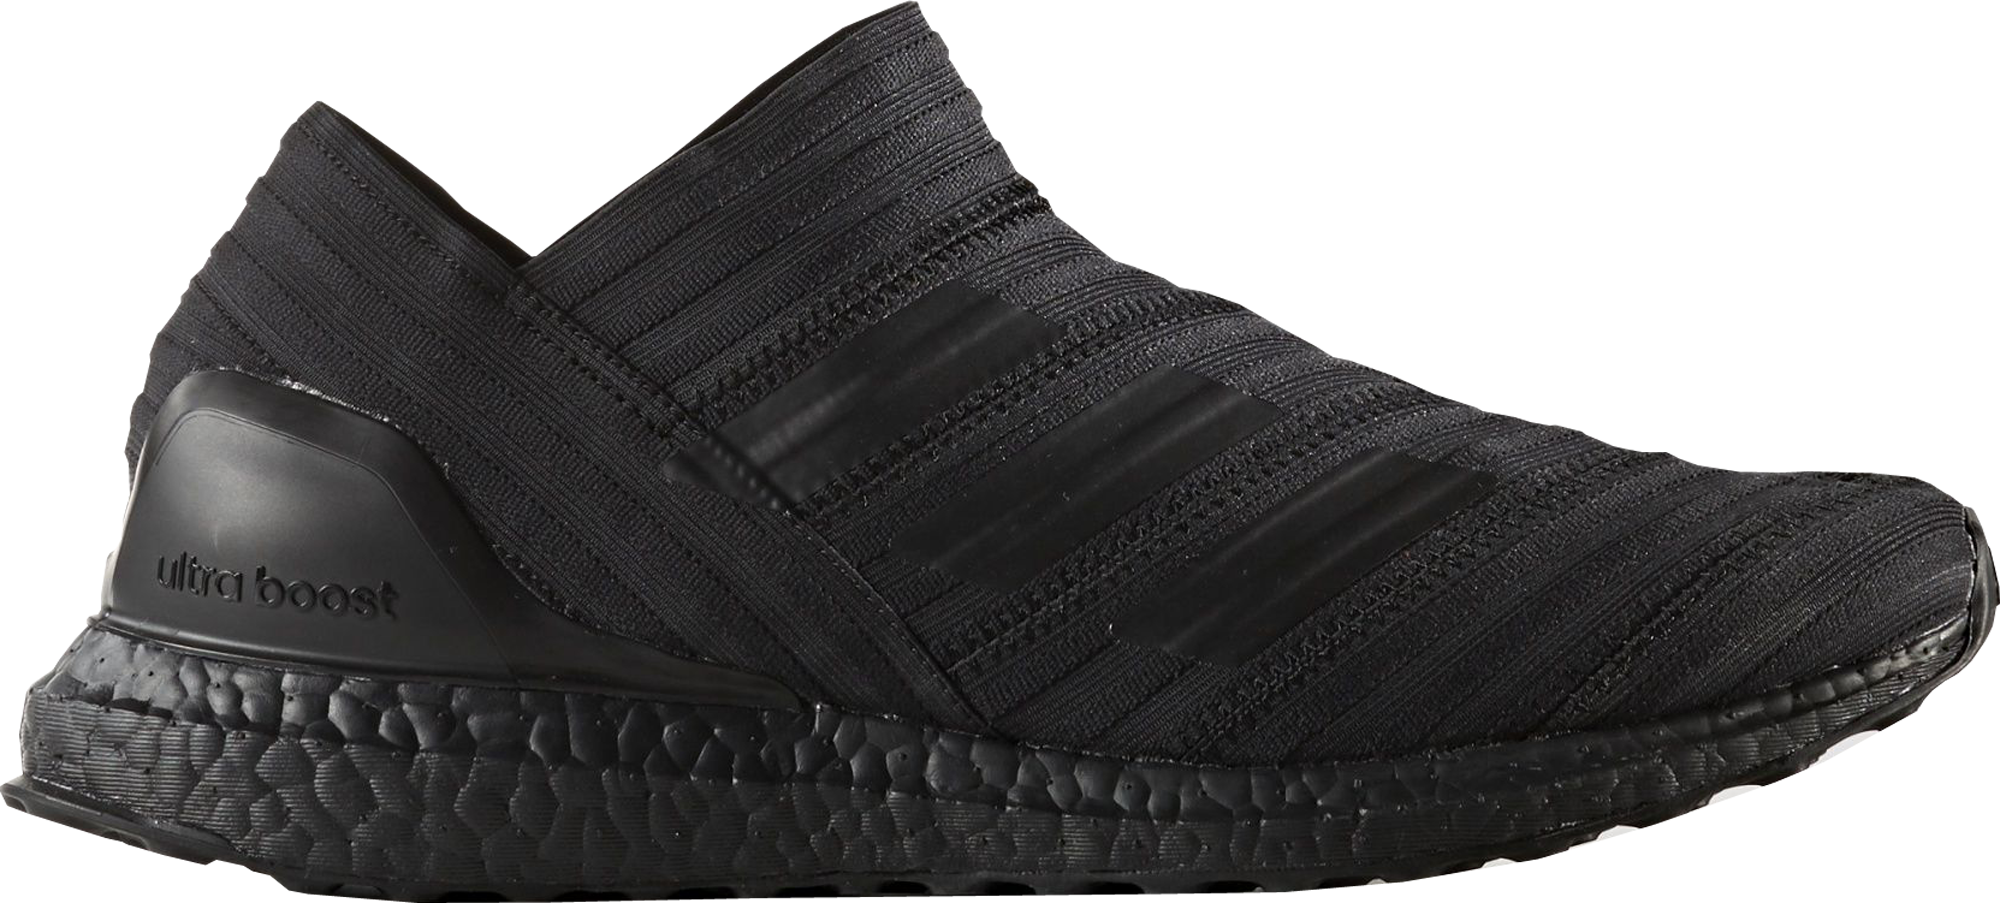 adidas Nemeziz Tango 17 Ultra Boost Triple Black